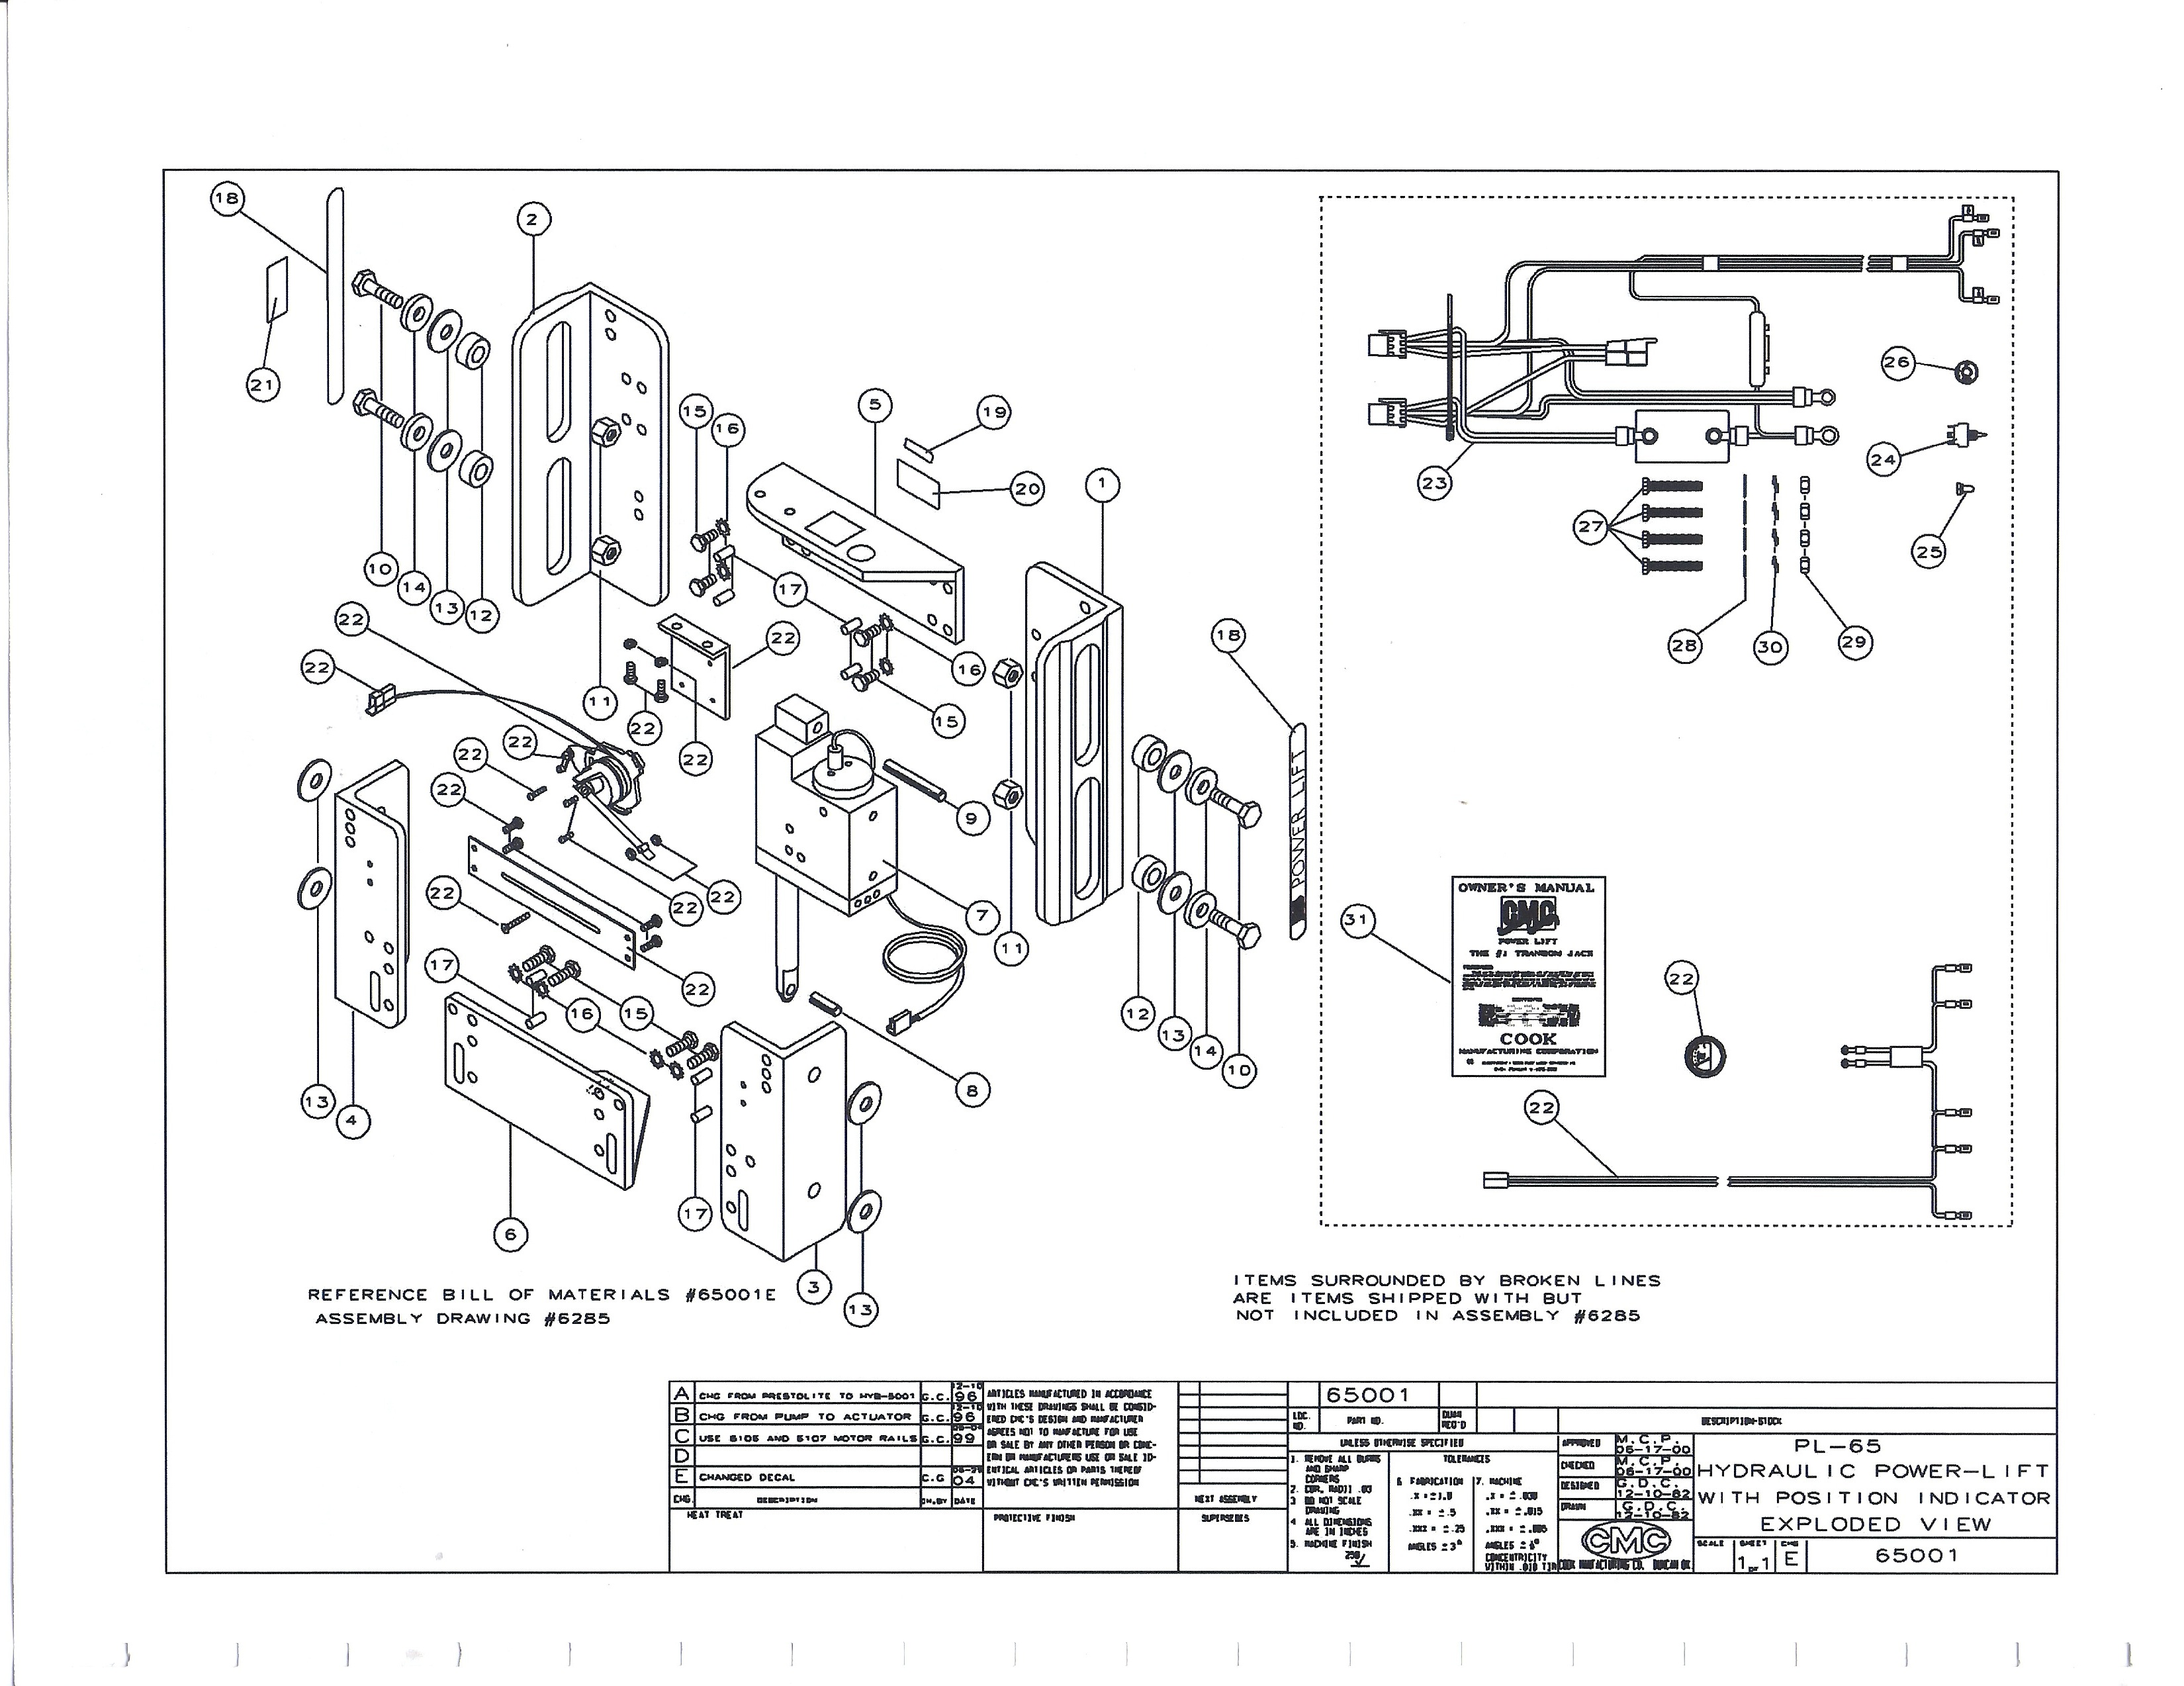 jack plate wiring diagram pioneer eeq mosfet 50wx4 cmc pl 65 hydraulic repair parts for 65001 and